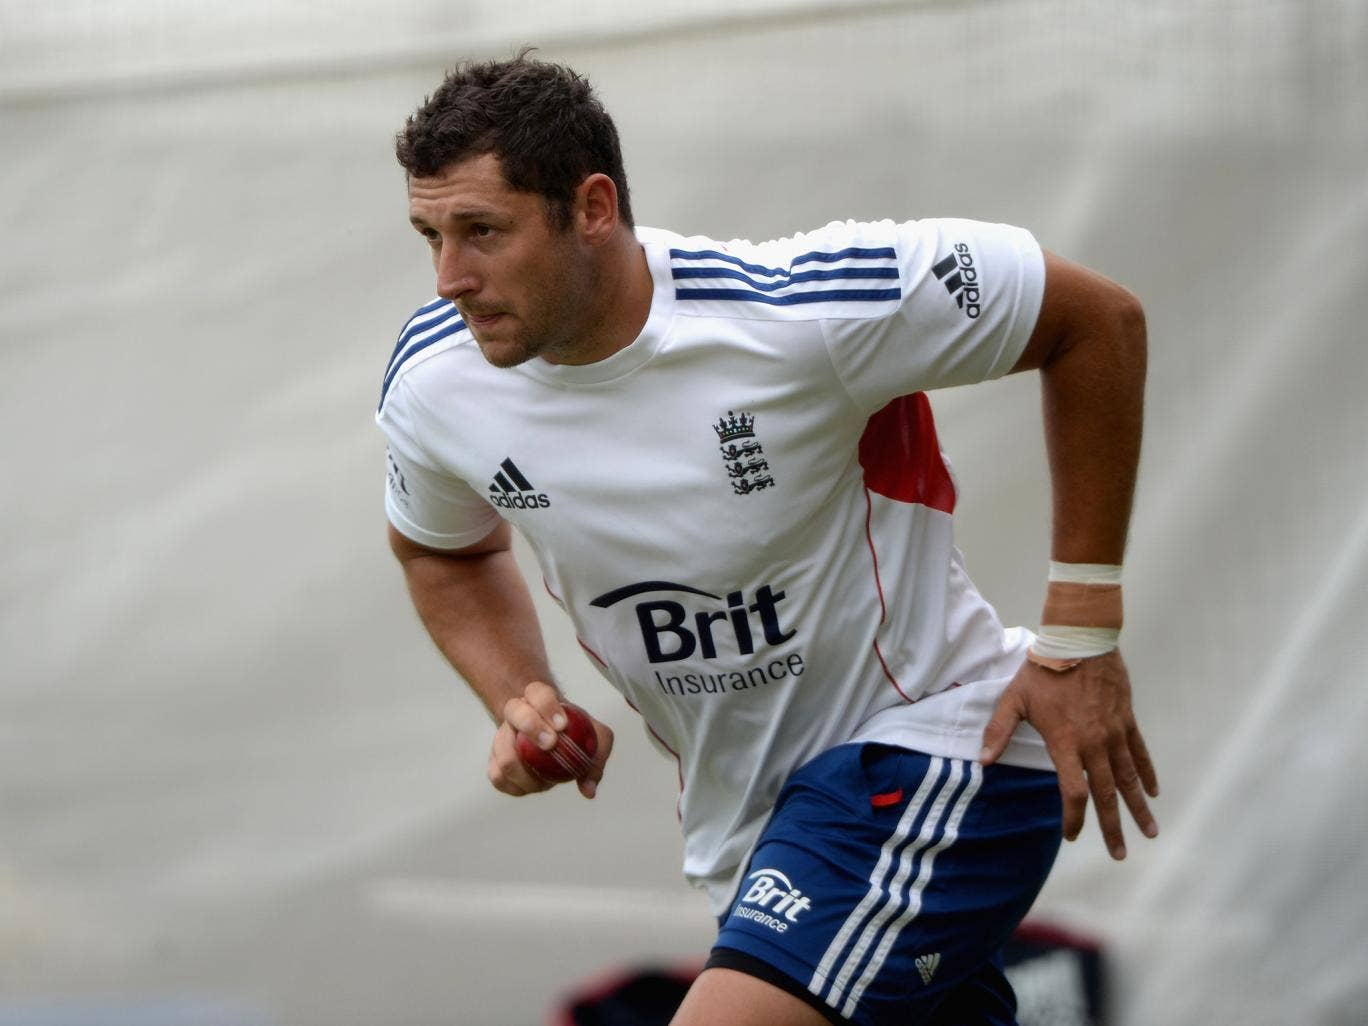 England could select fit-again bowler Tim Bresnan after he recovered from a stress fracture in his lower back